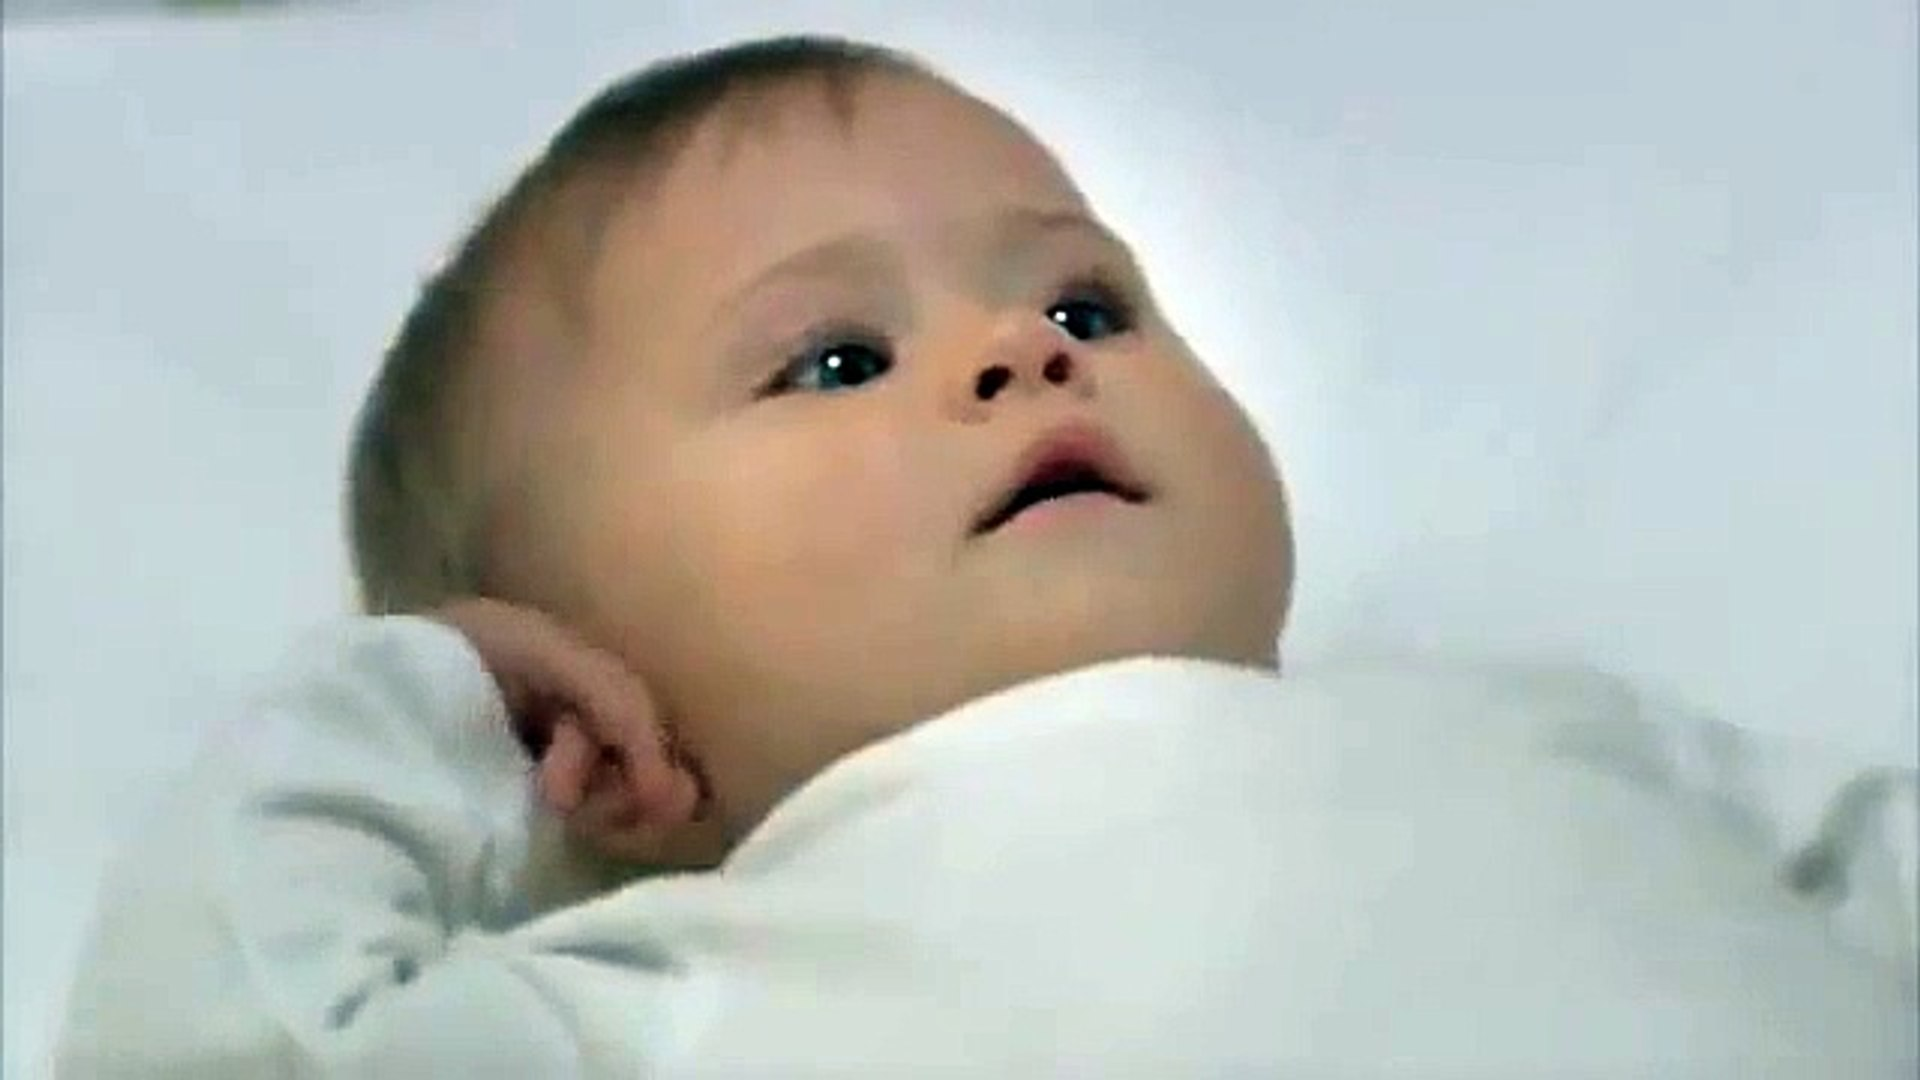 Beautiful Baby In The World-Look a Beautiful Baby